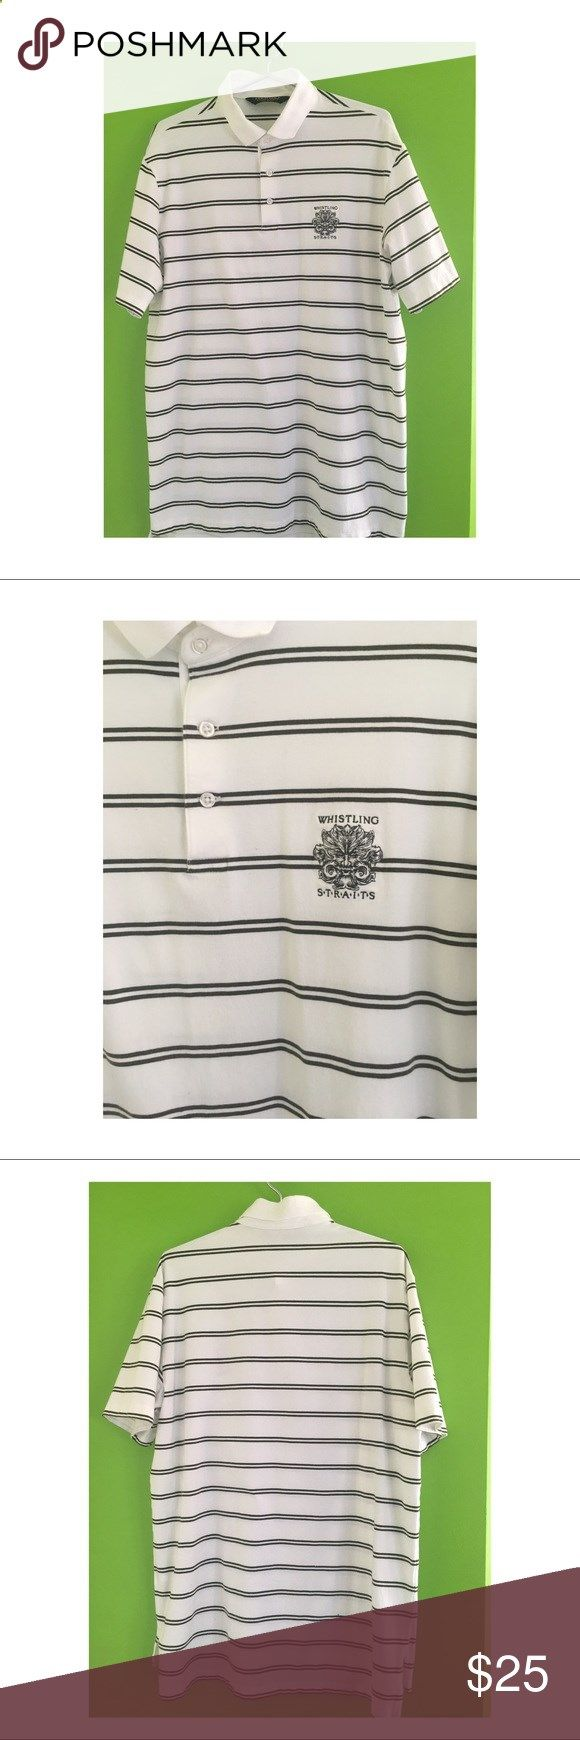 Golf Shirts - Ralph Lauren Whistling Straits Polo Golf Shirt Excellent condition Polo by Ralph Lauren Shirts Polos